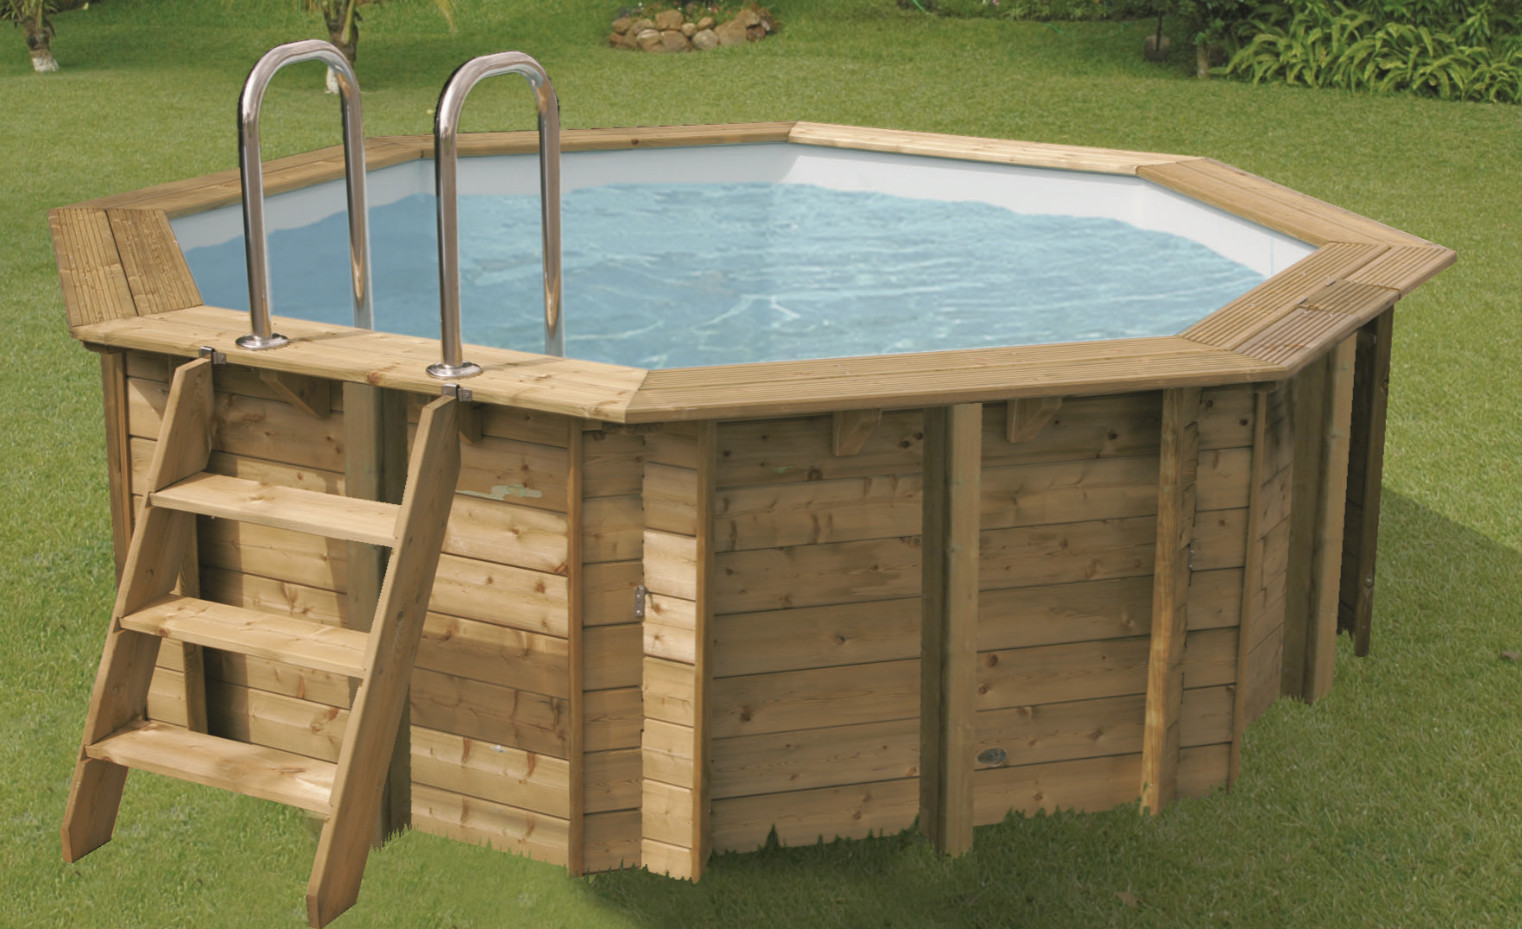 Piscine bois sunwater ronde en kit 360x120 lekingstore for Piscine bois en kit